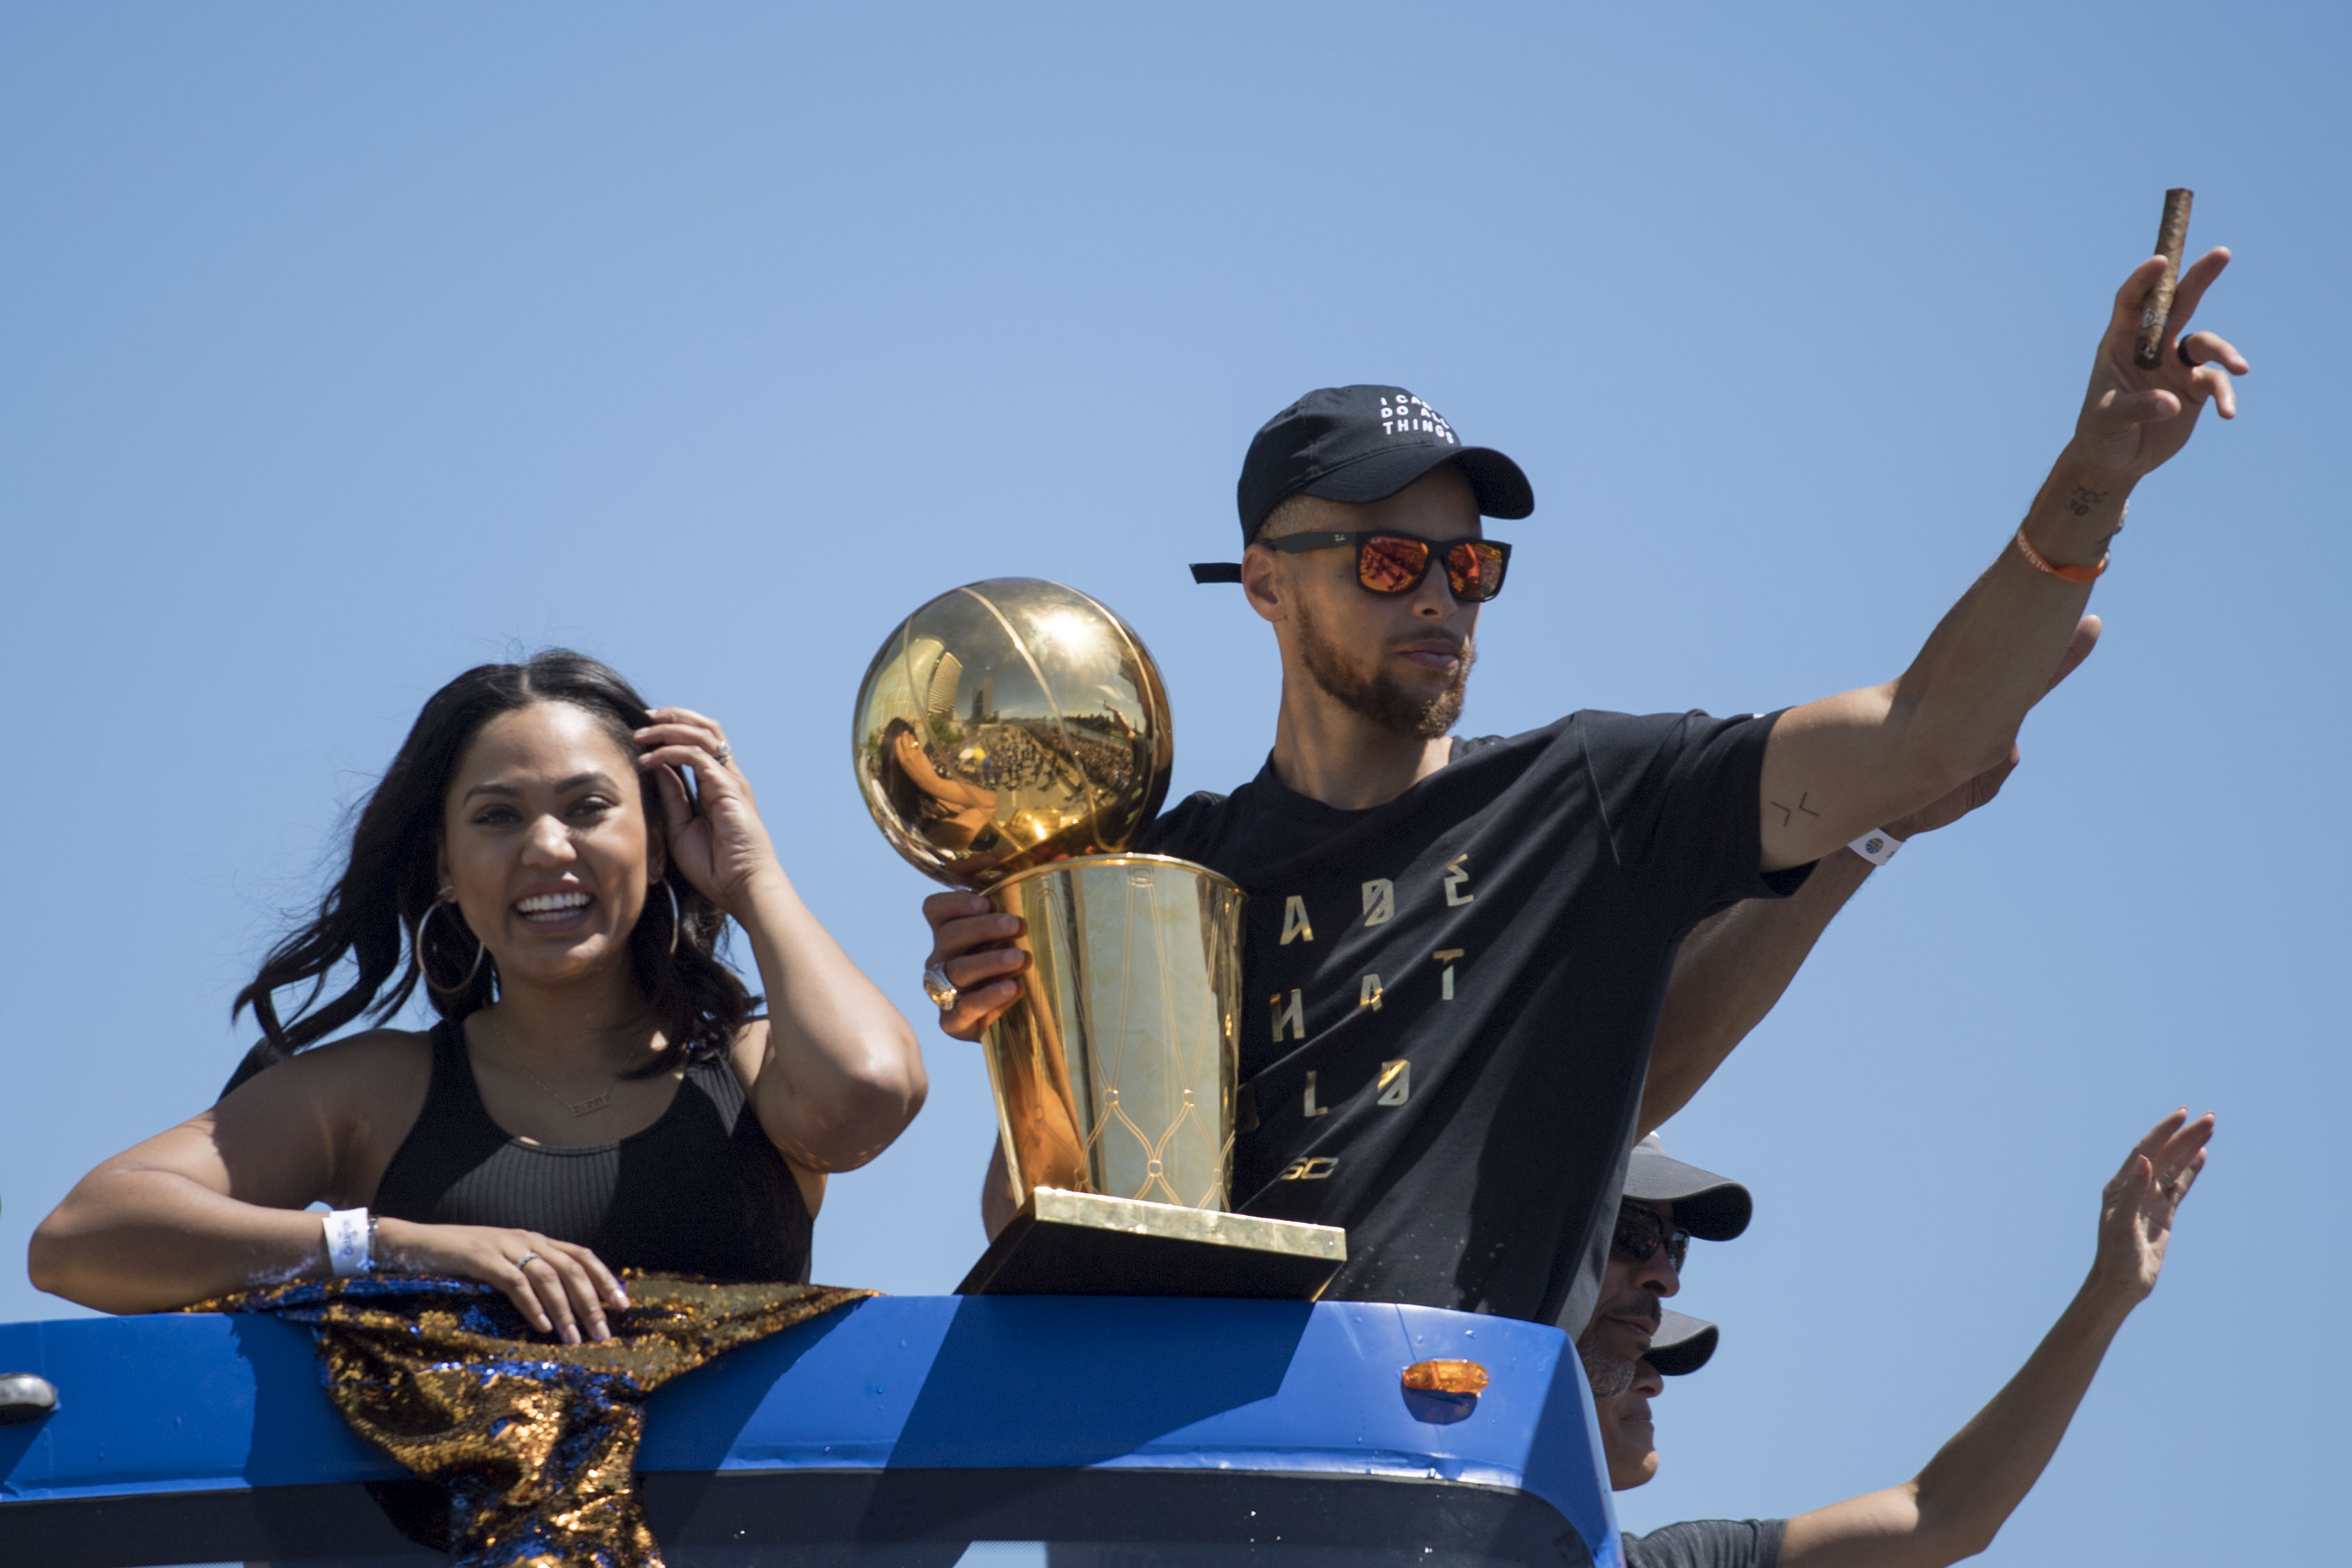 Stephen Curry's 2nd NBA championship puts him in rare company